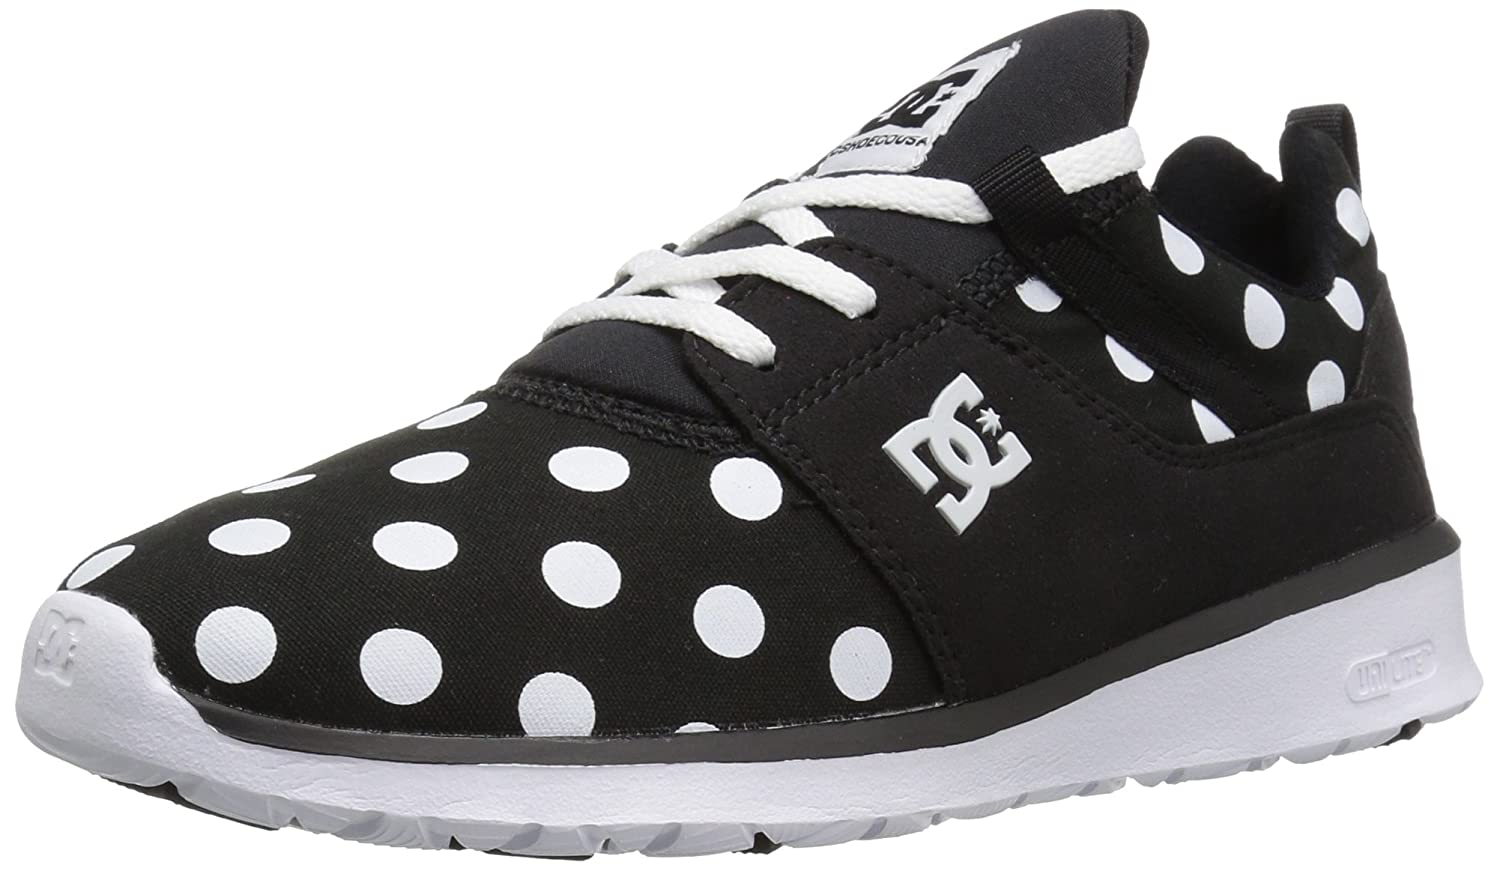 DC Women's Heathrow SE Skate Shoe B01H19K7DW 5.5 B(M) US|Black/White Print